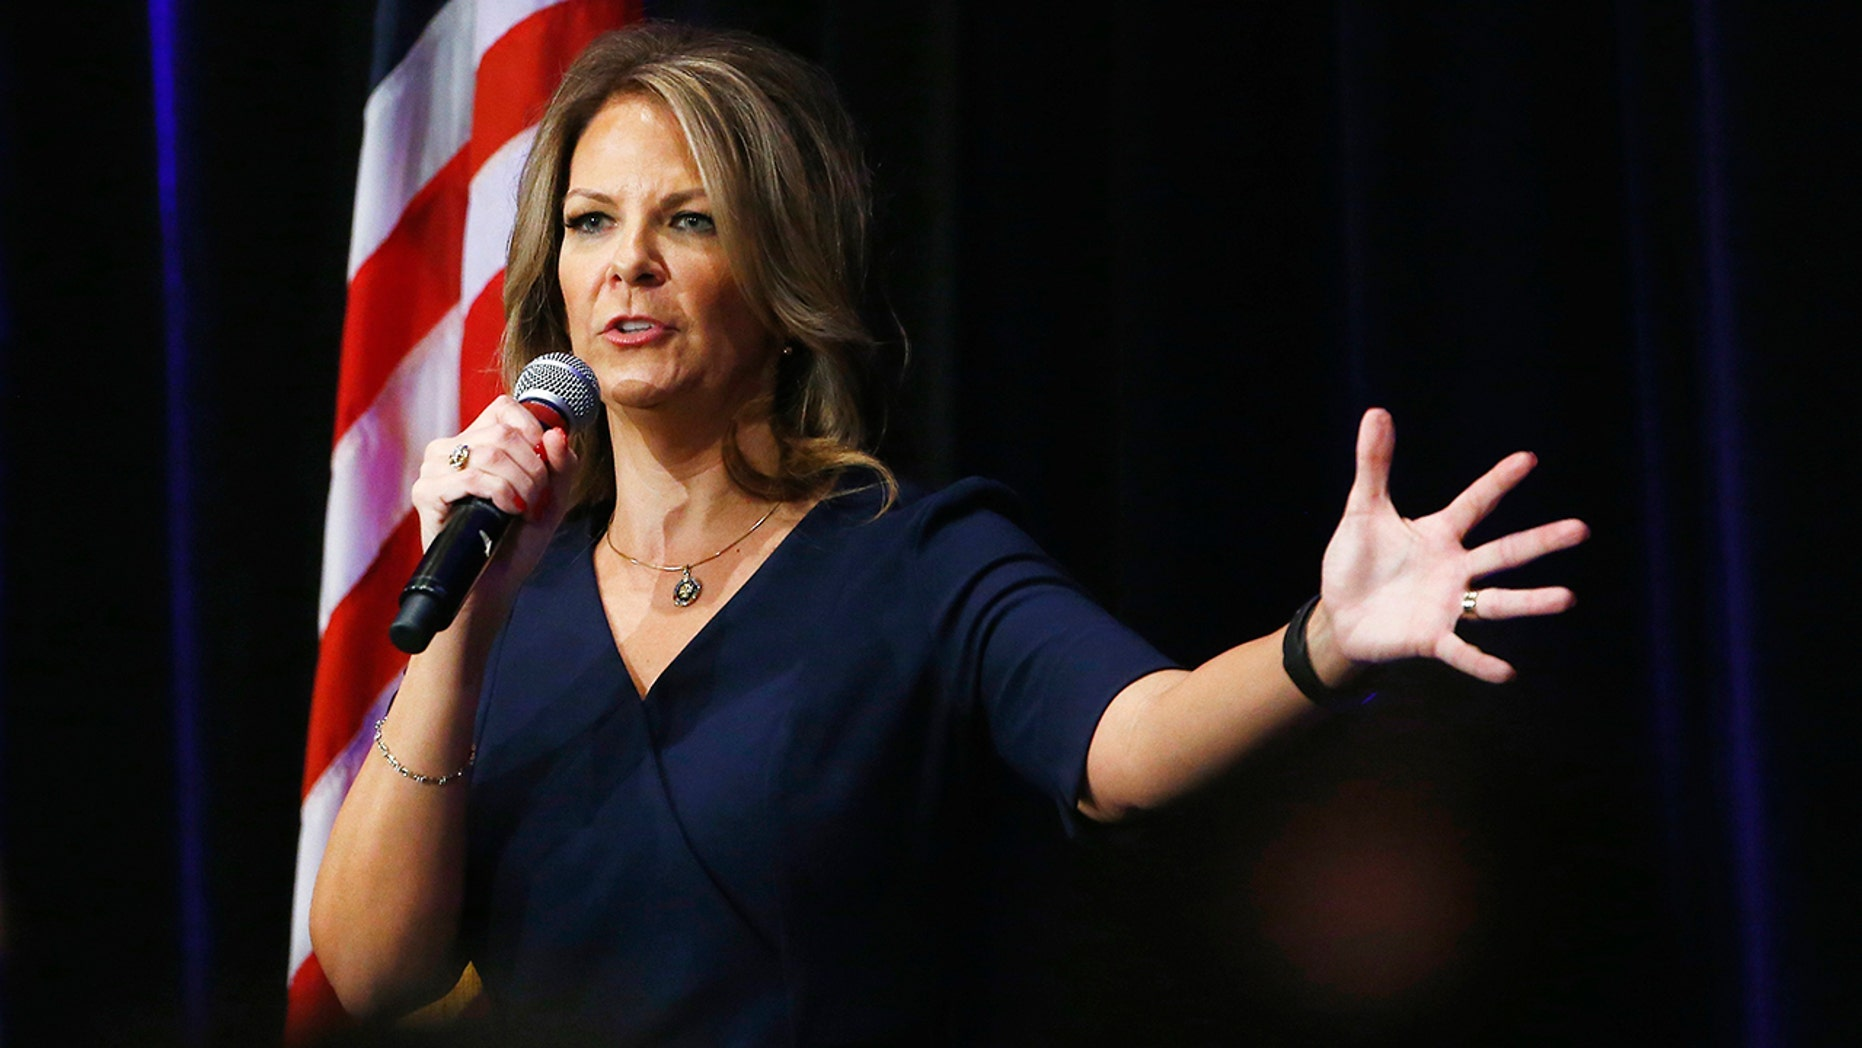 Former Arizona State Sen. Kelli Ward apologized over comments about Sen. John McCain ending his medical treatment.